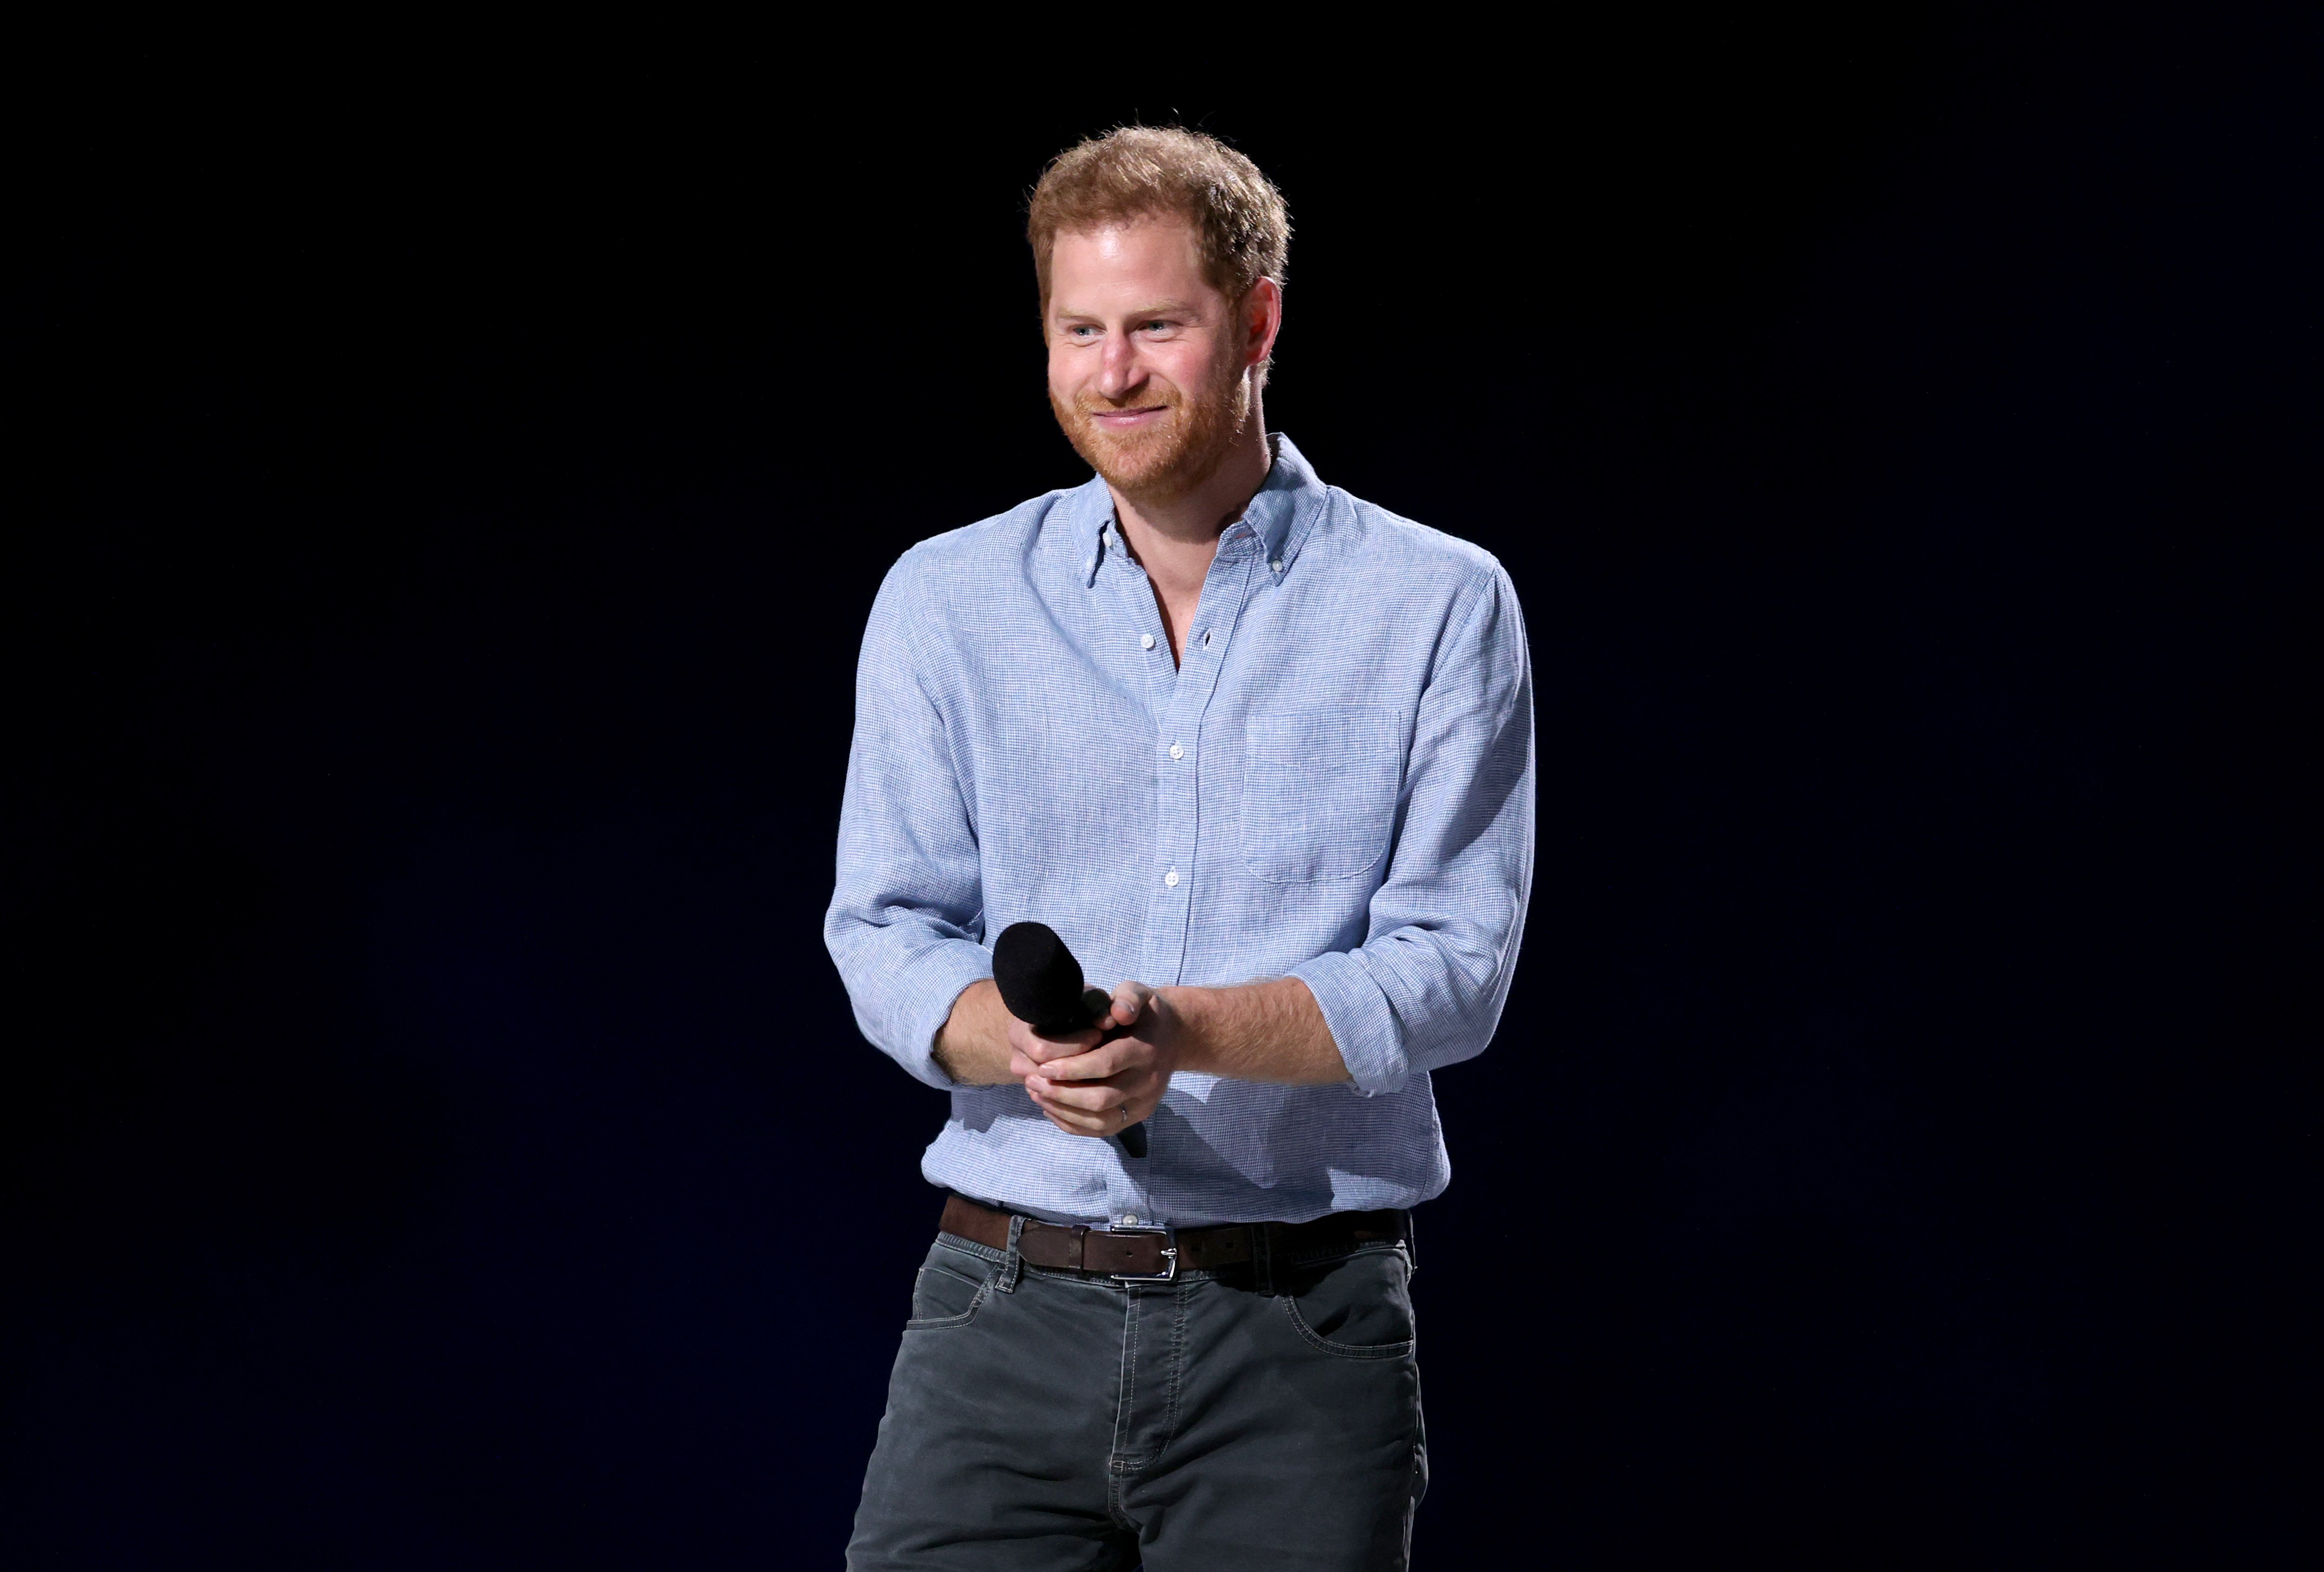 Prince Harry at the Global Citizen VAX LIVE: The Concert To Reunite The World will be broadcast on May 8, 2021.  Source: Getty Images